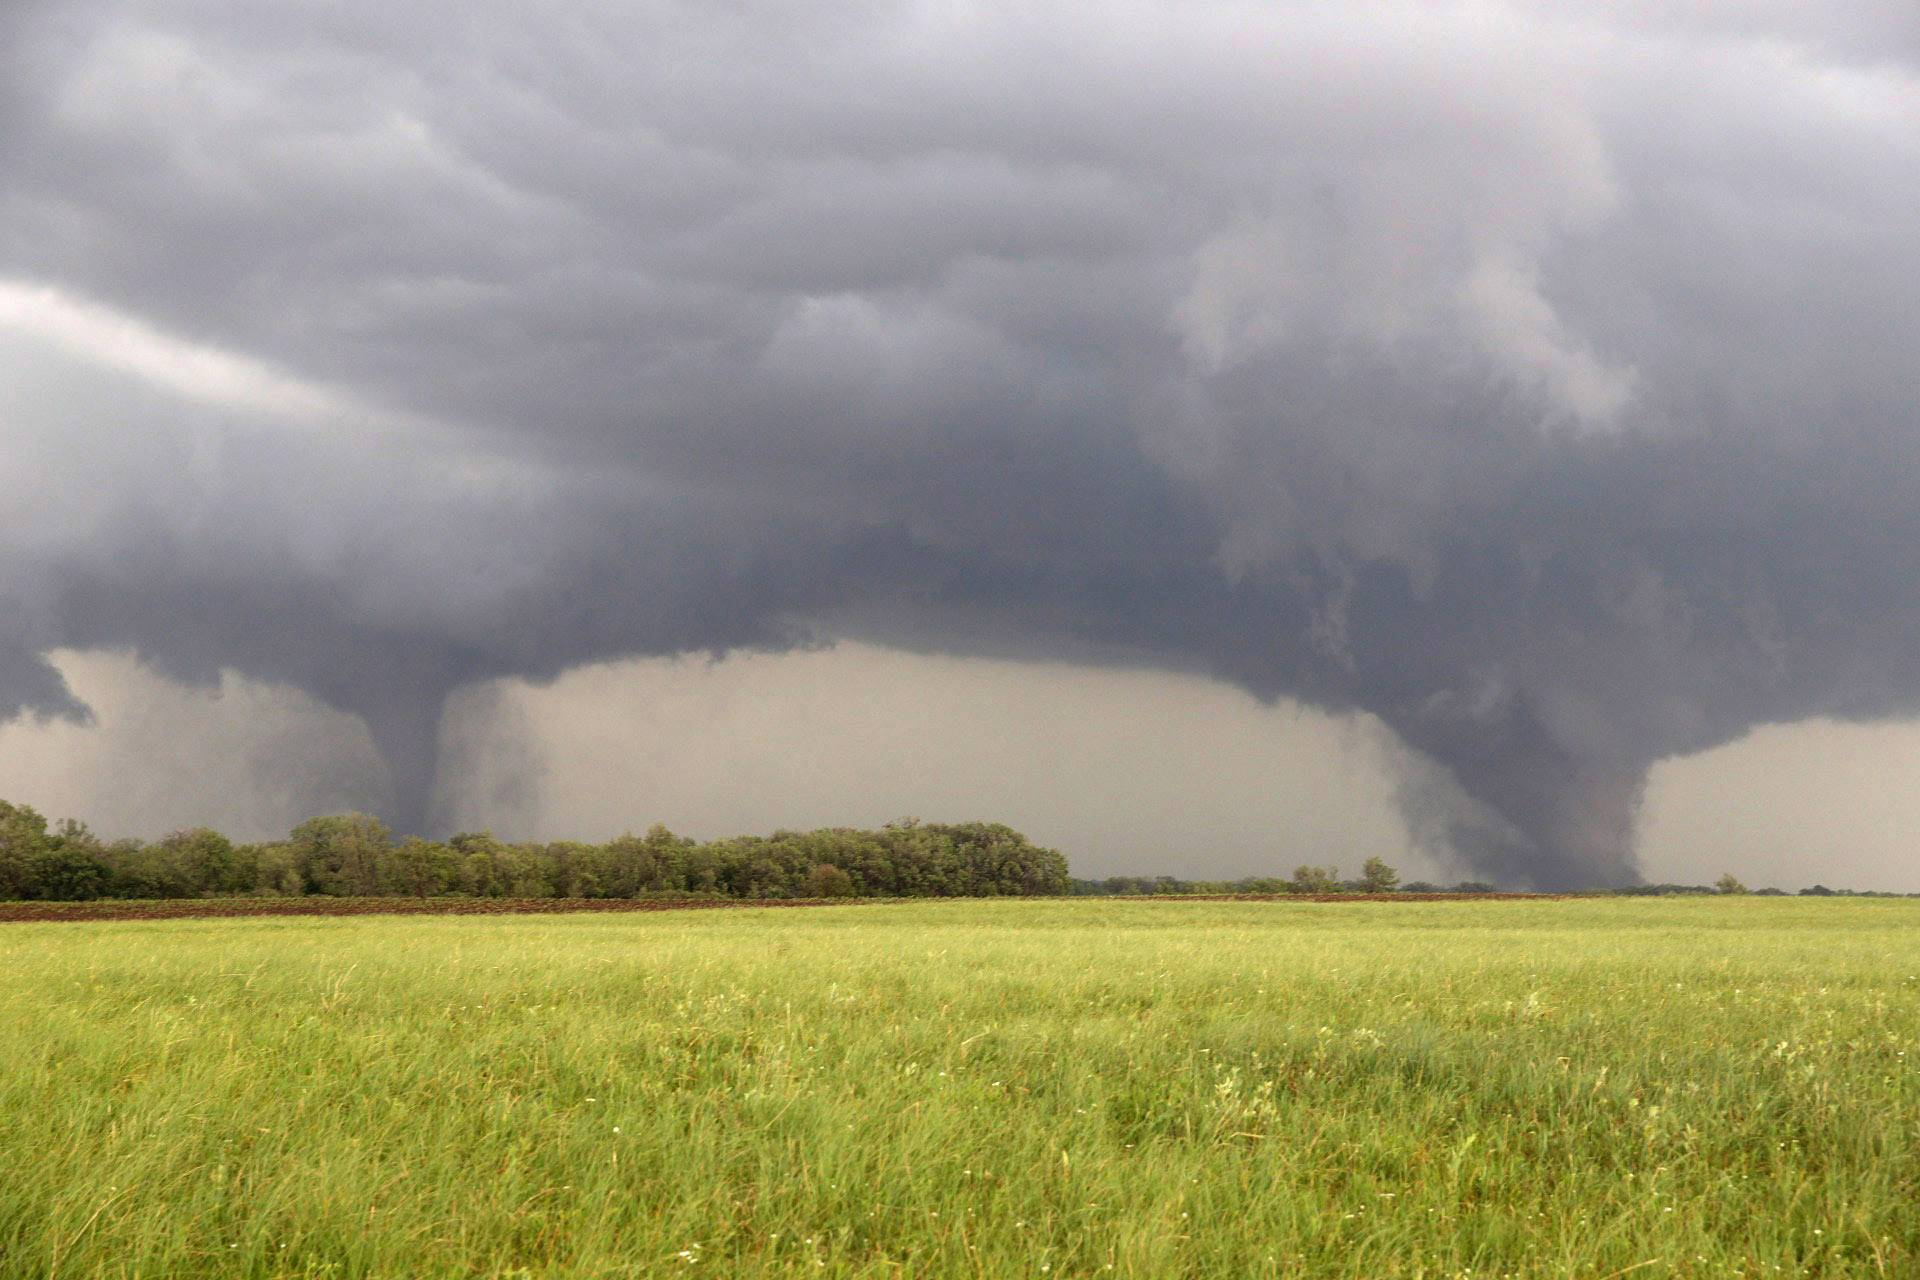 Two tornadoes approach Pilger, Neb., Monday June 16, 2014. The National Weather Service said at least two twisters touched down within roughly a mile of each other Monday in northeast Nebraska.